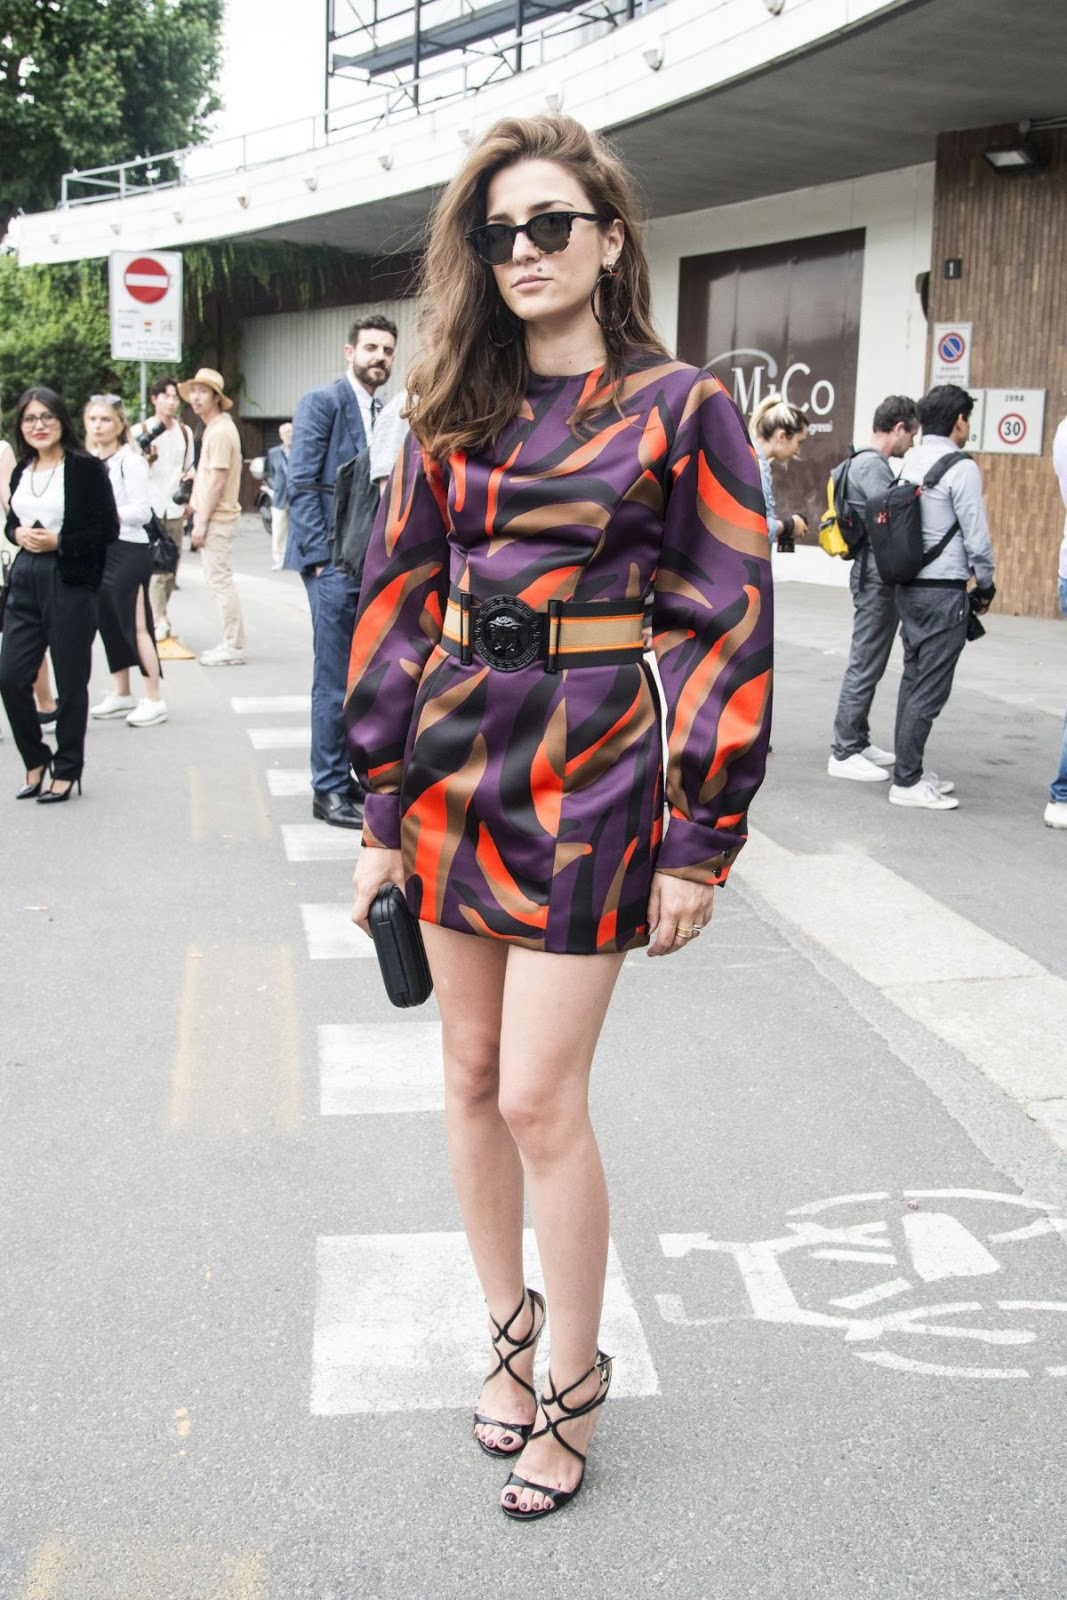 HQ Photos of Eleonora Carisi at Versace Fashion Show in Milan